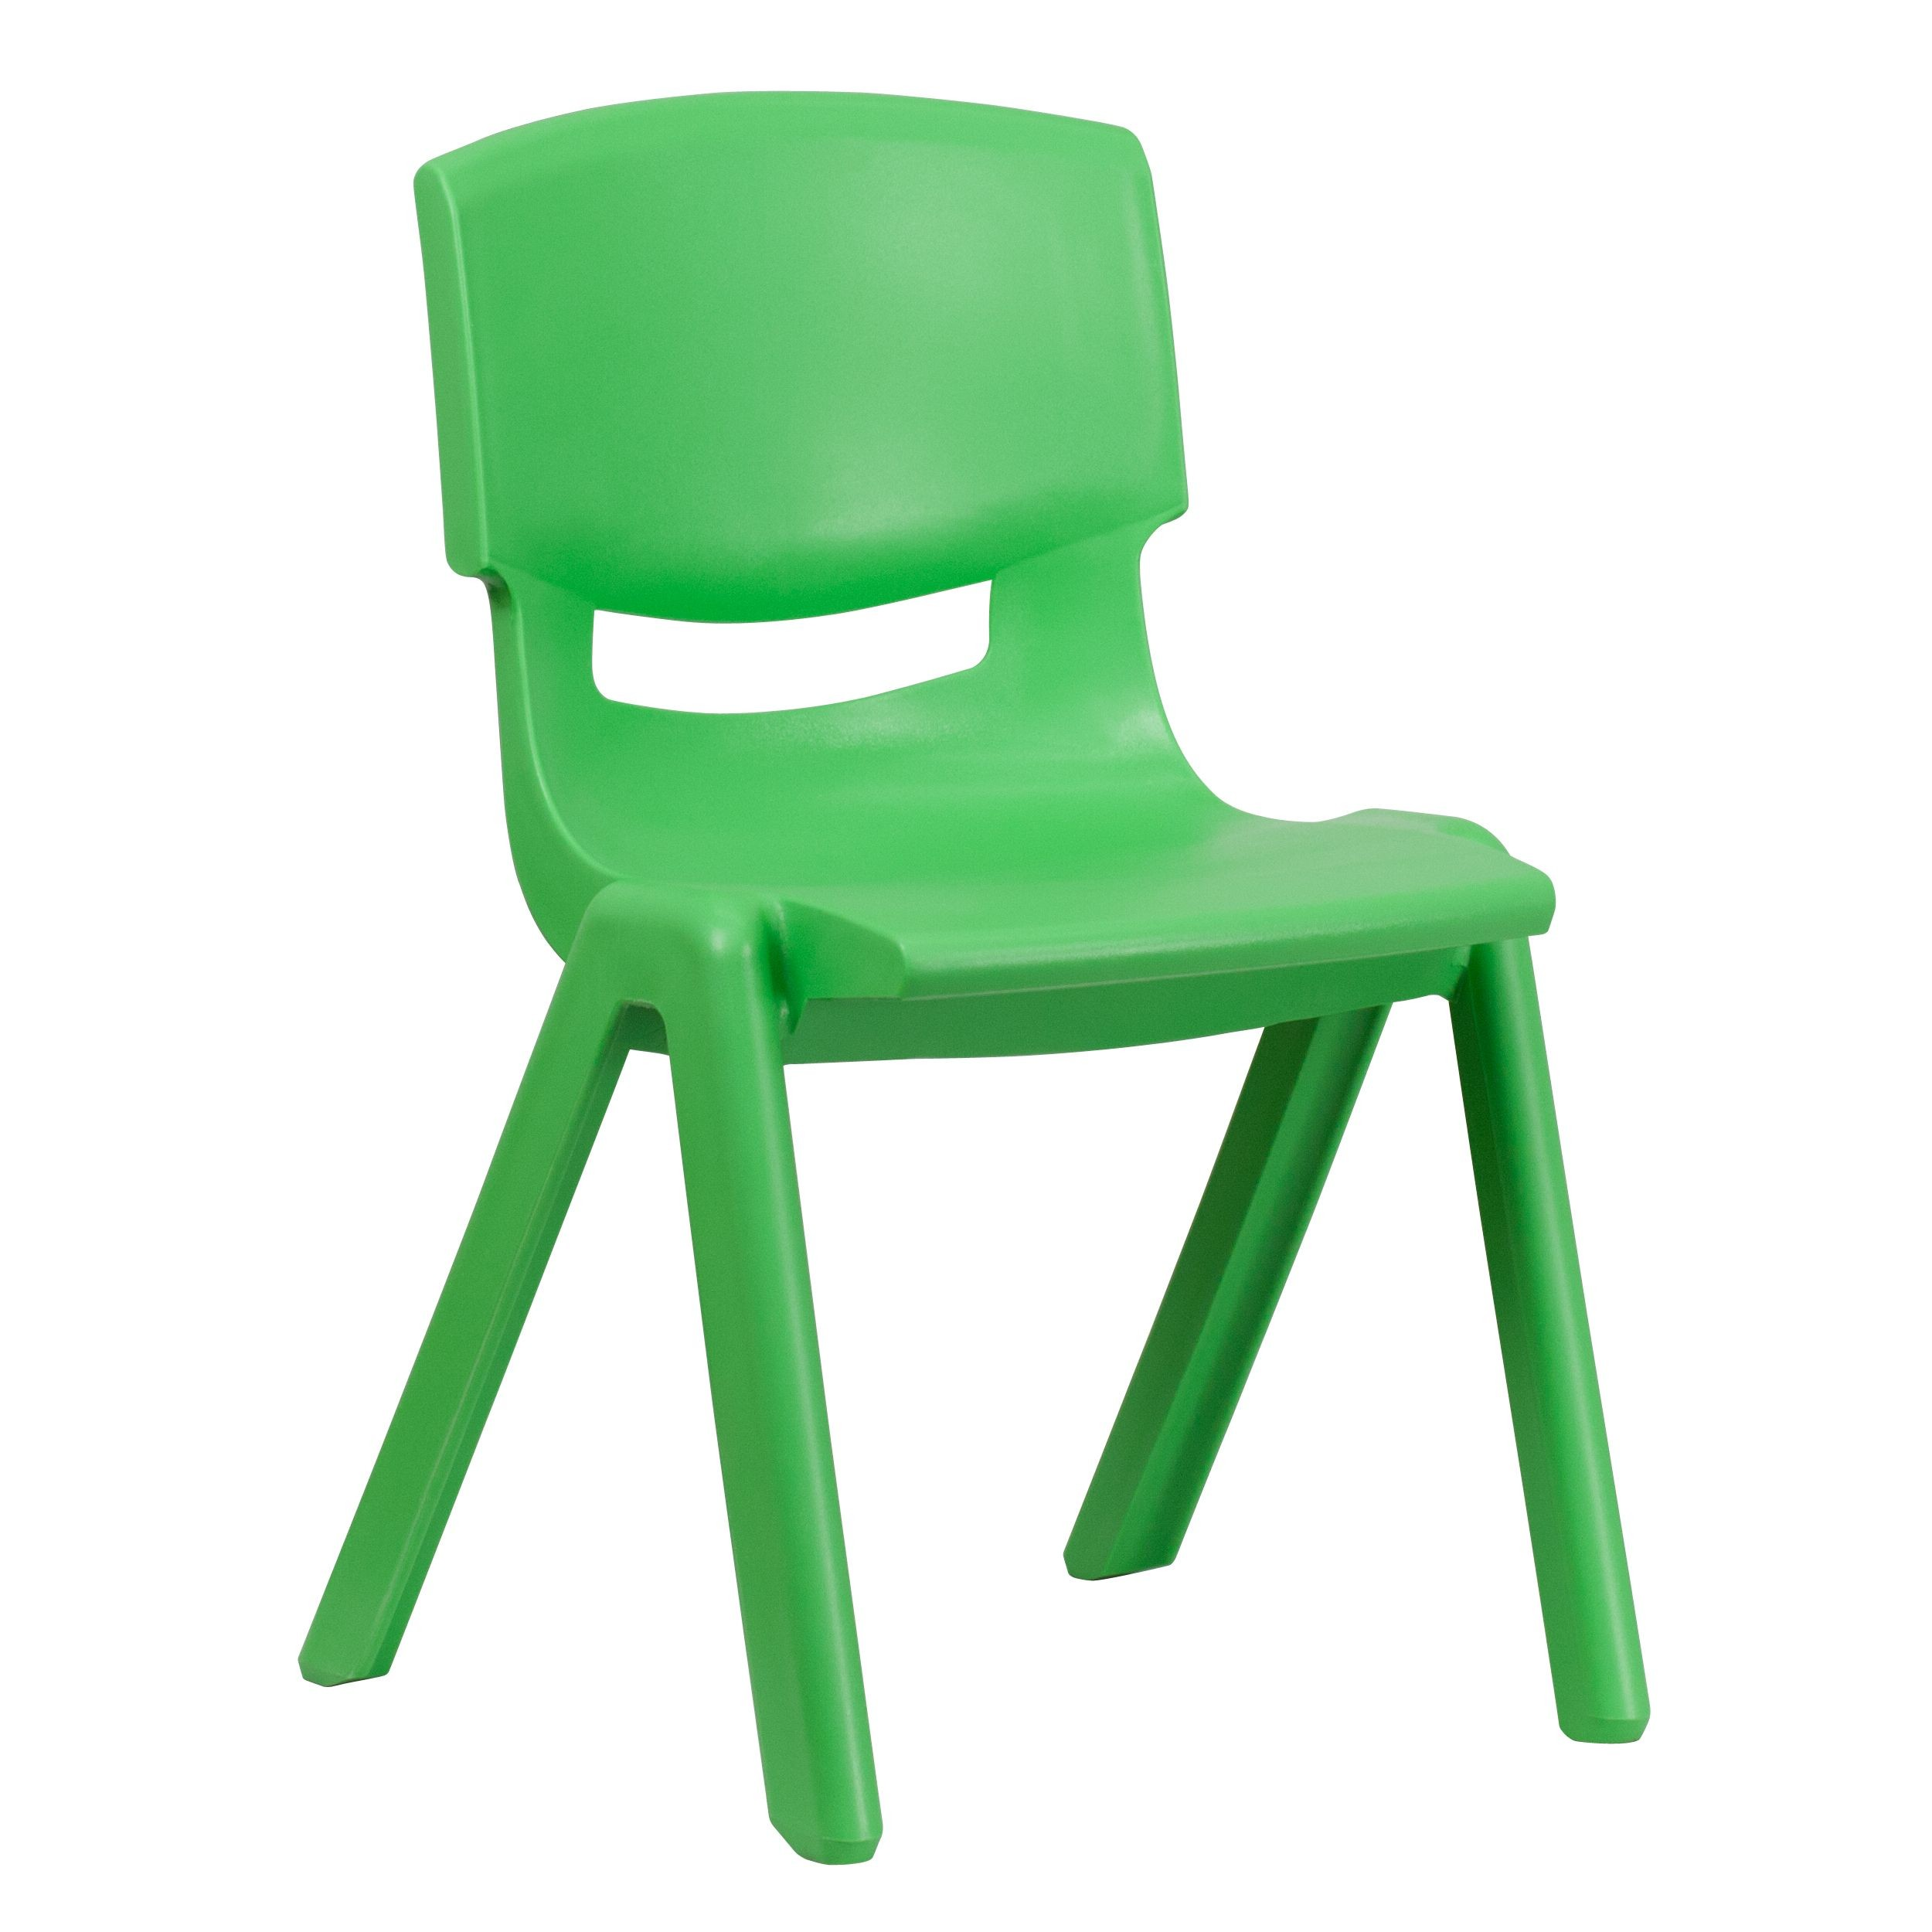 "Flash Furniture YU-YCX-005-GREEN-GG Green Plastic Stackable School Chair with 15.5"" Seat Height"